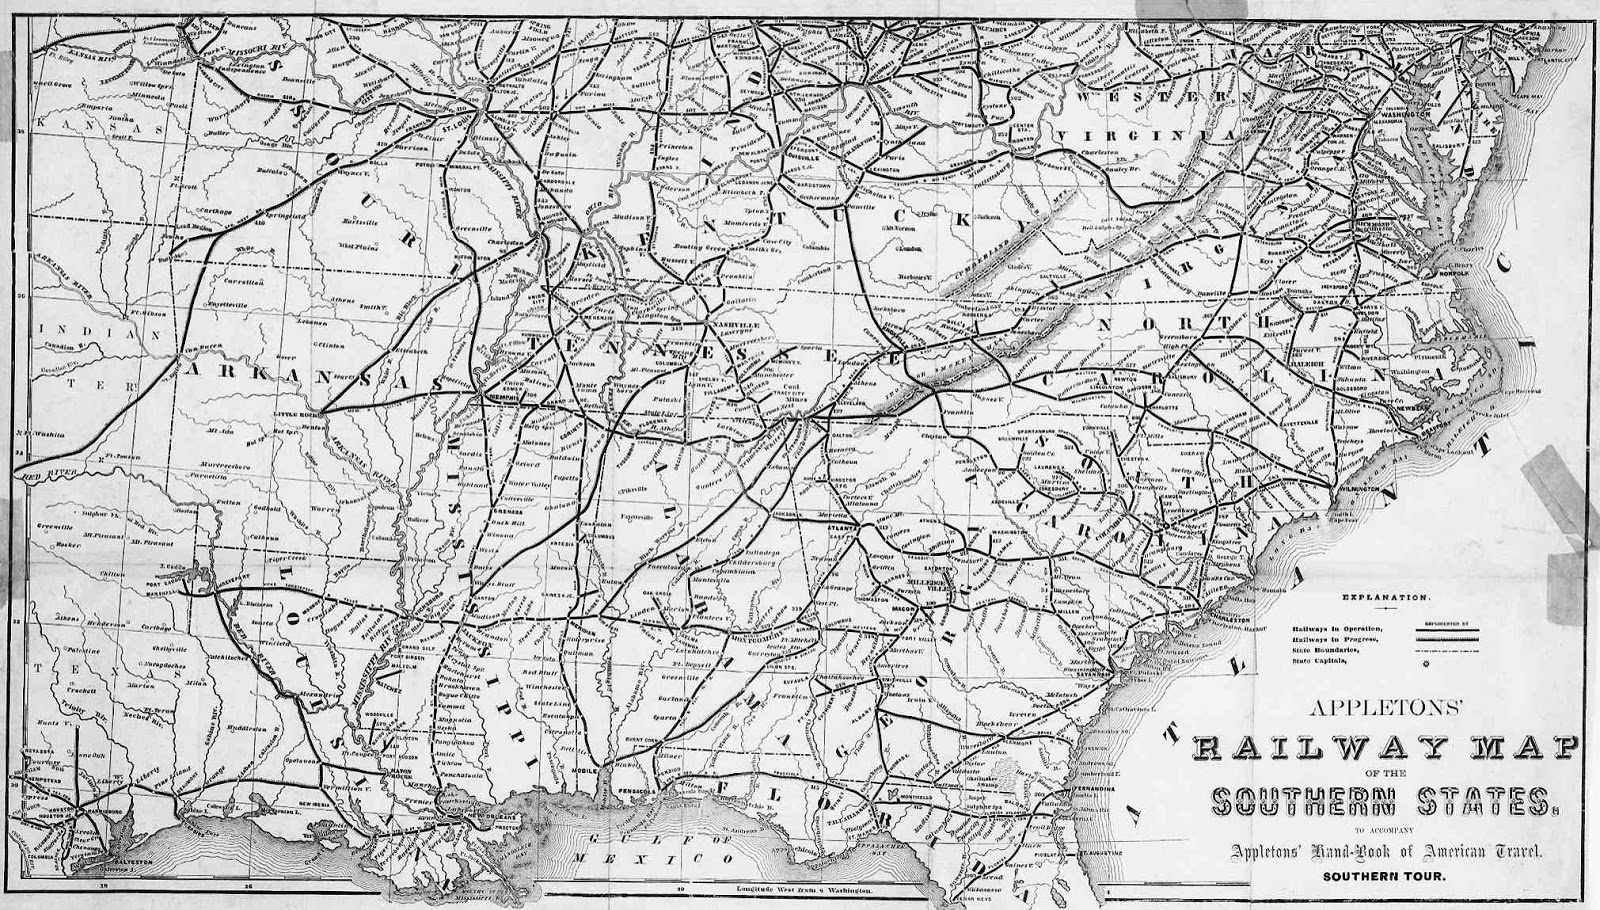 Outtakes Map 12 Railways Of The Southern States